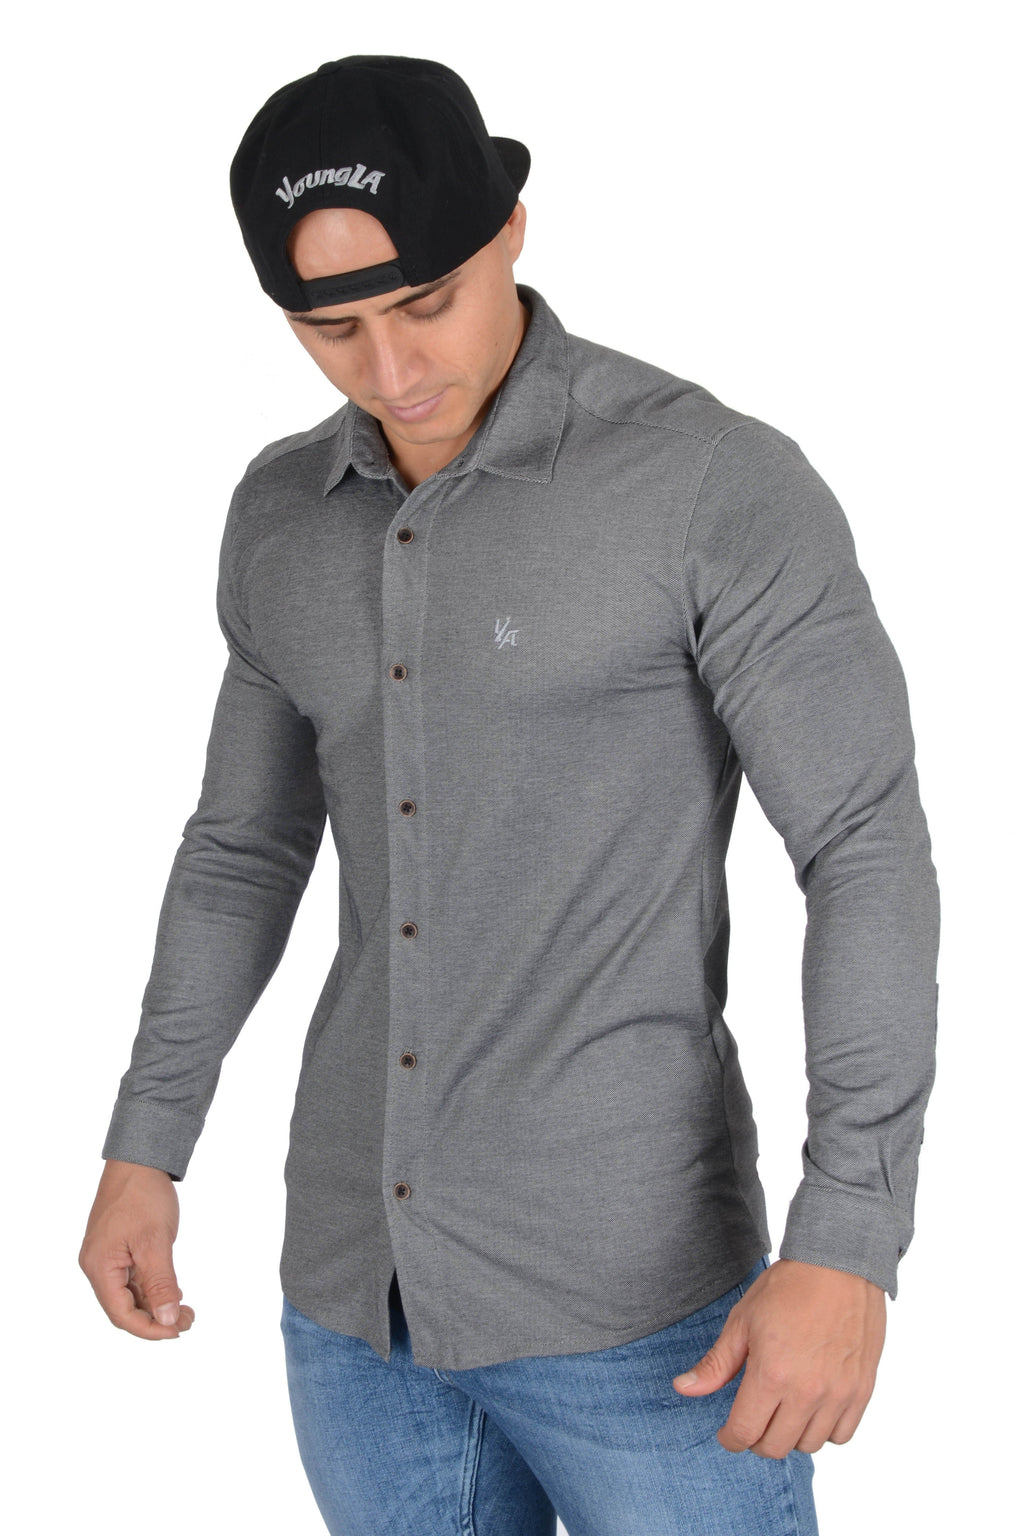 YoungLA Athletic Fit Dress Shirt Bottom Down 415